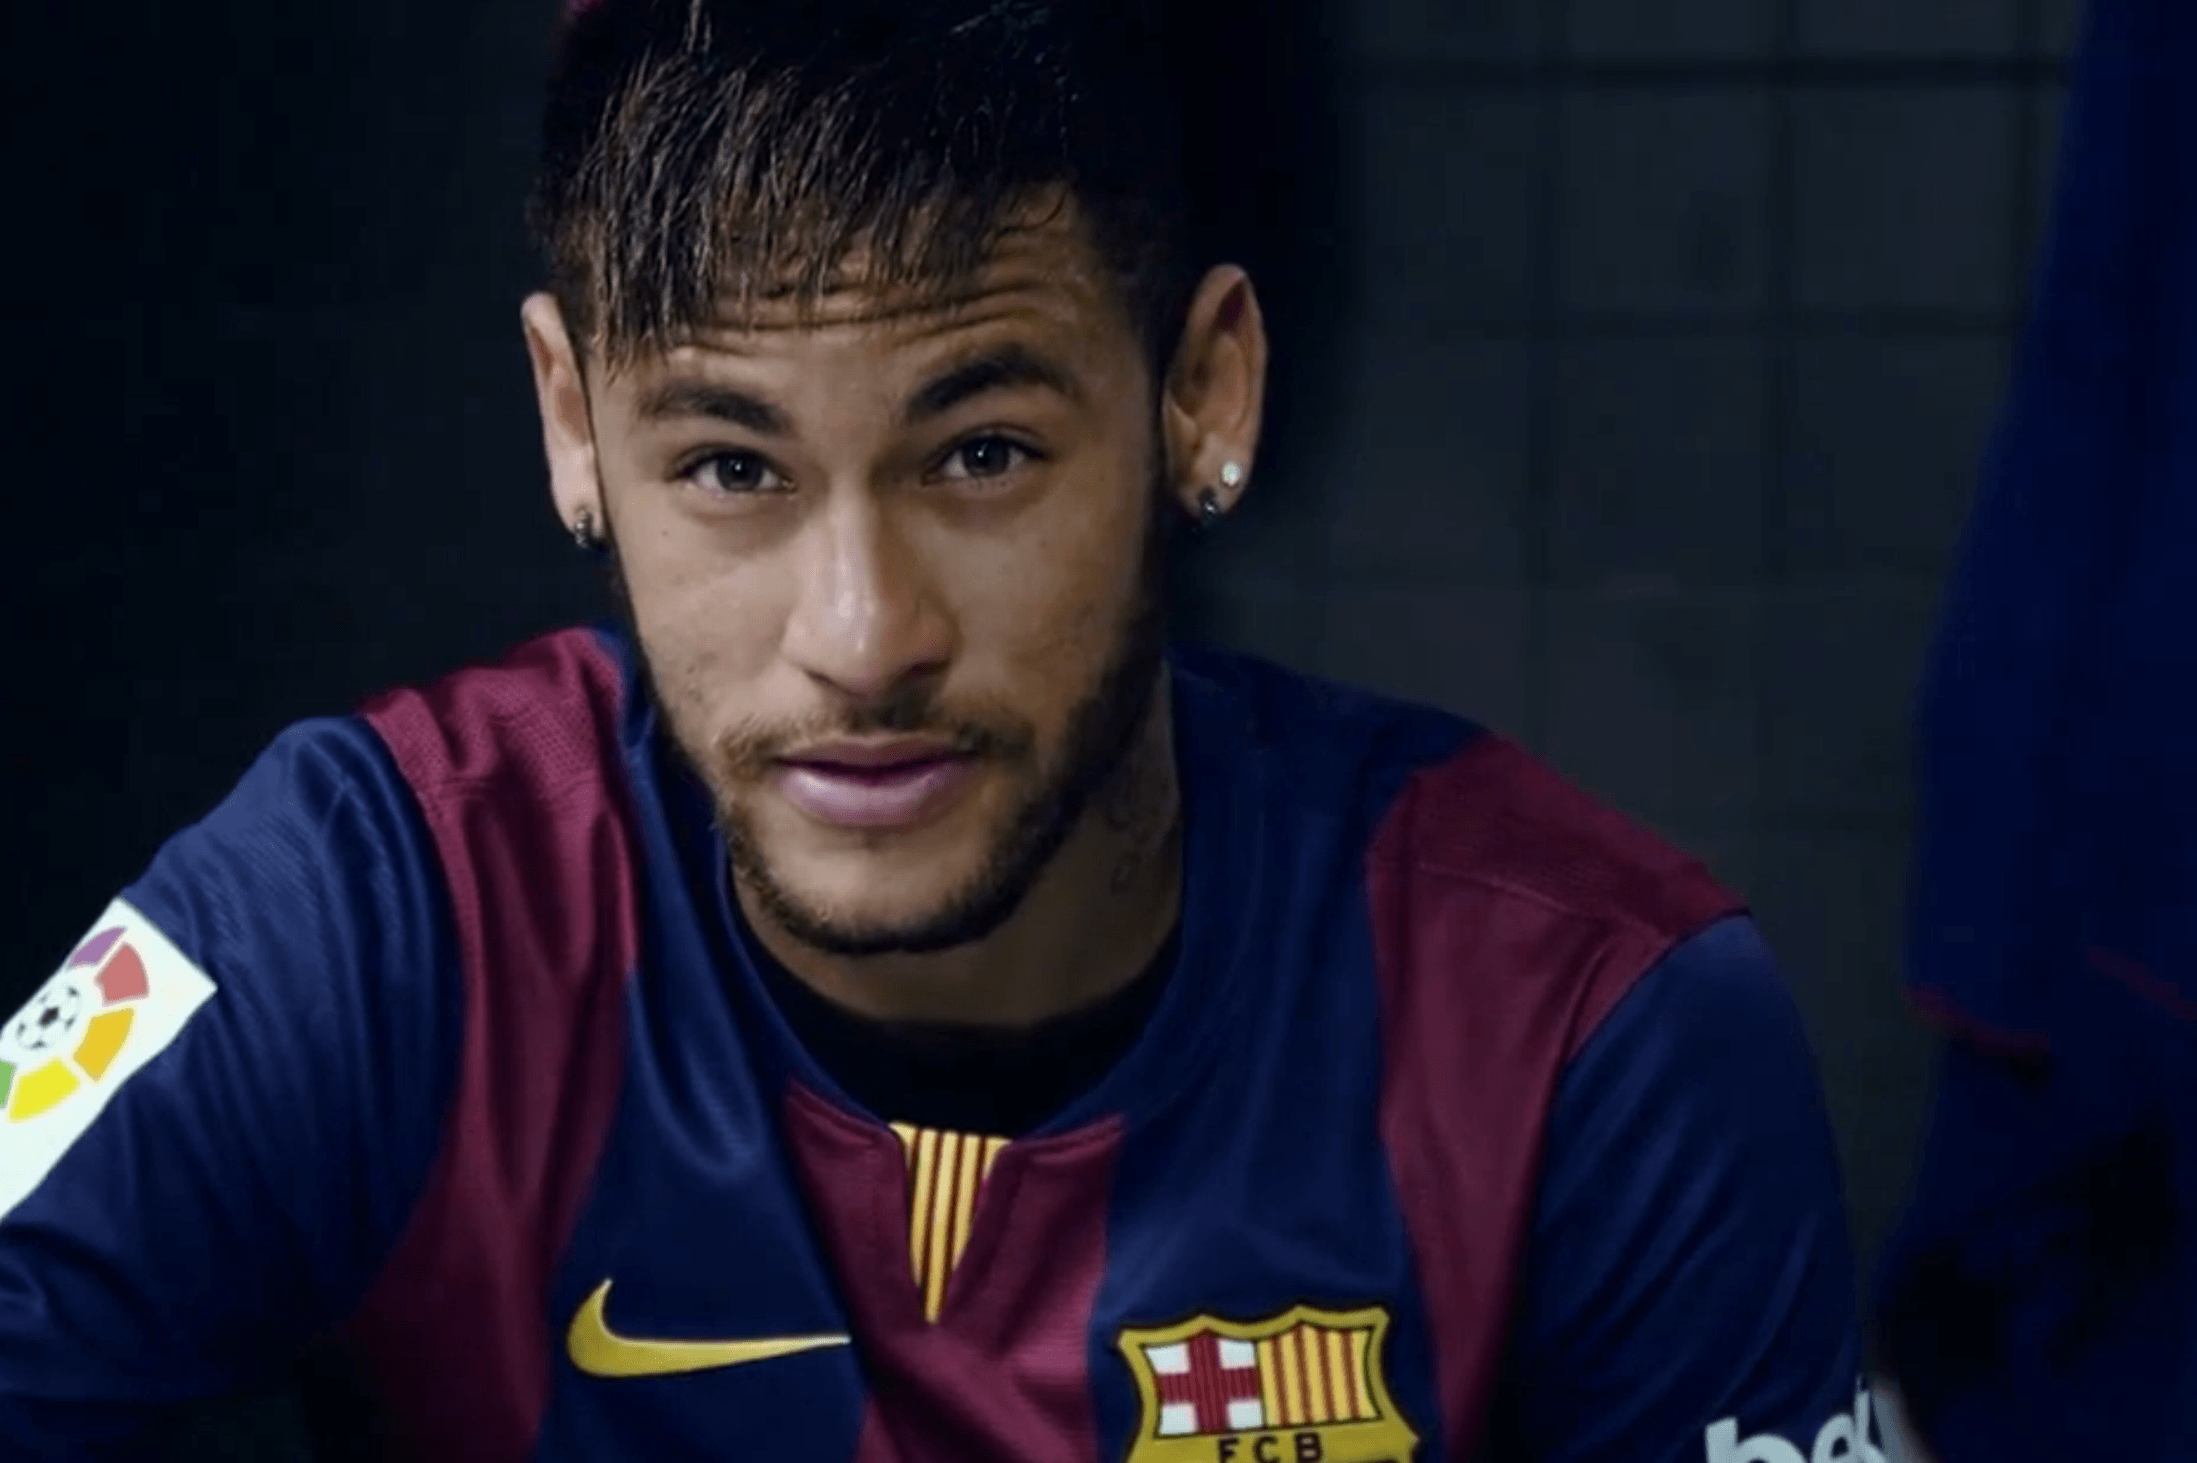 Neymar Jr. Wallpapers Full HD Pictures | Pictureicon